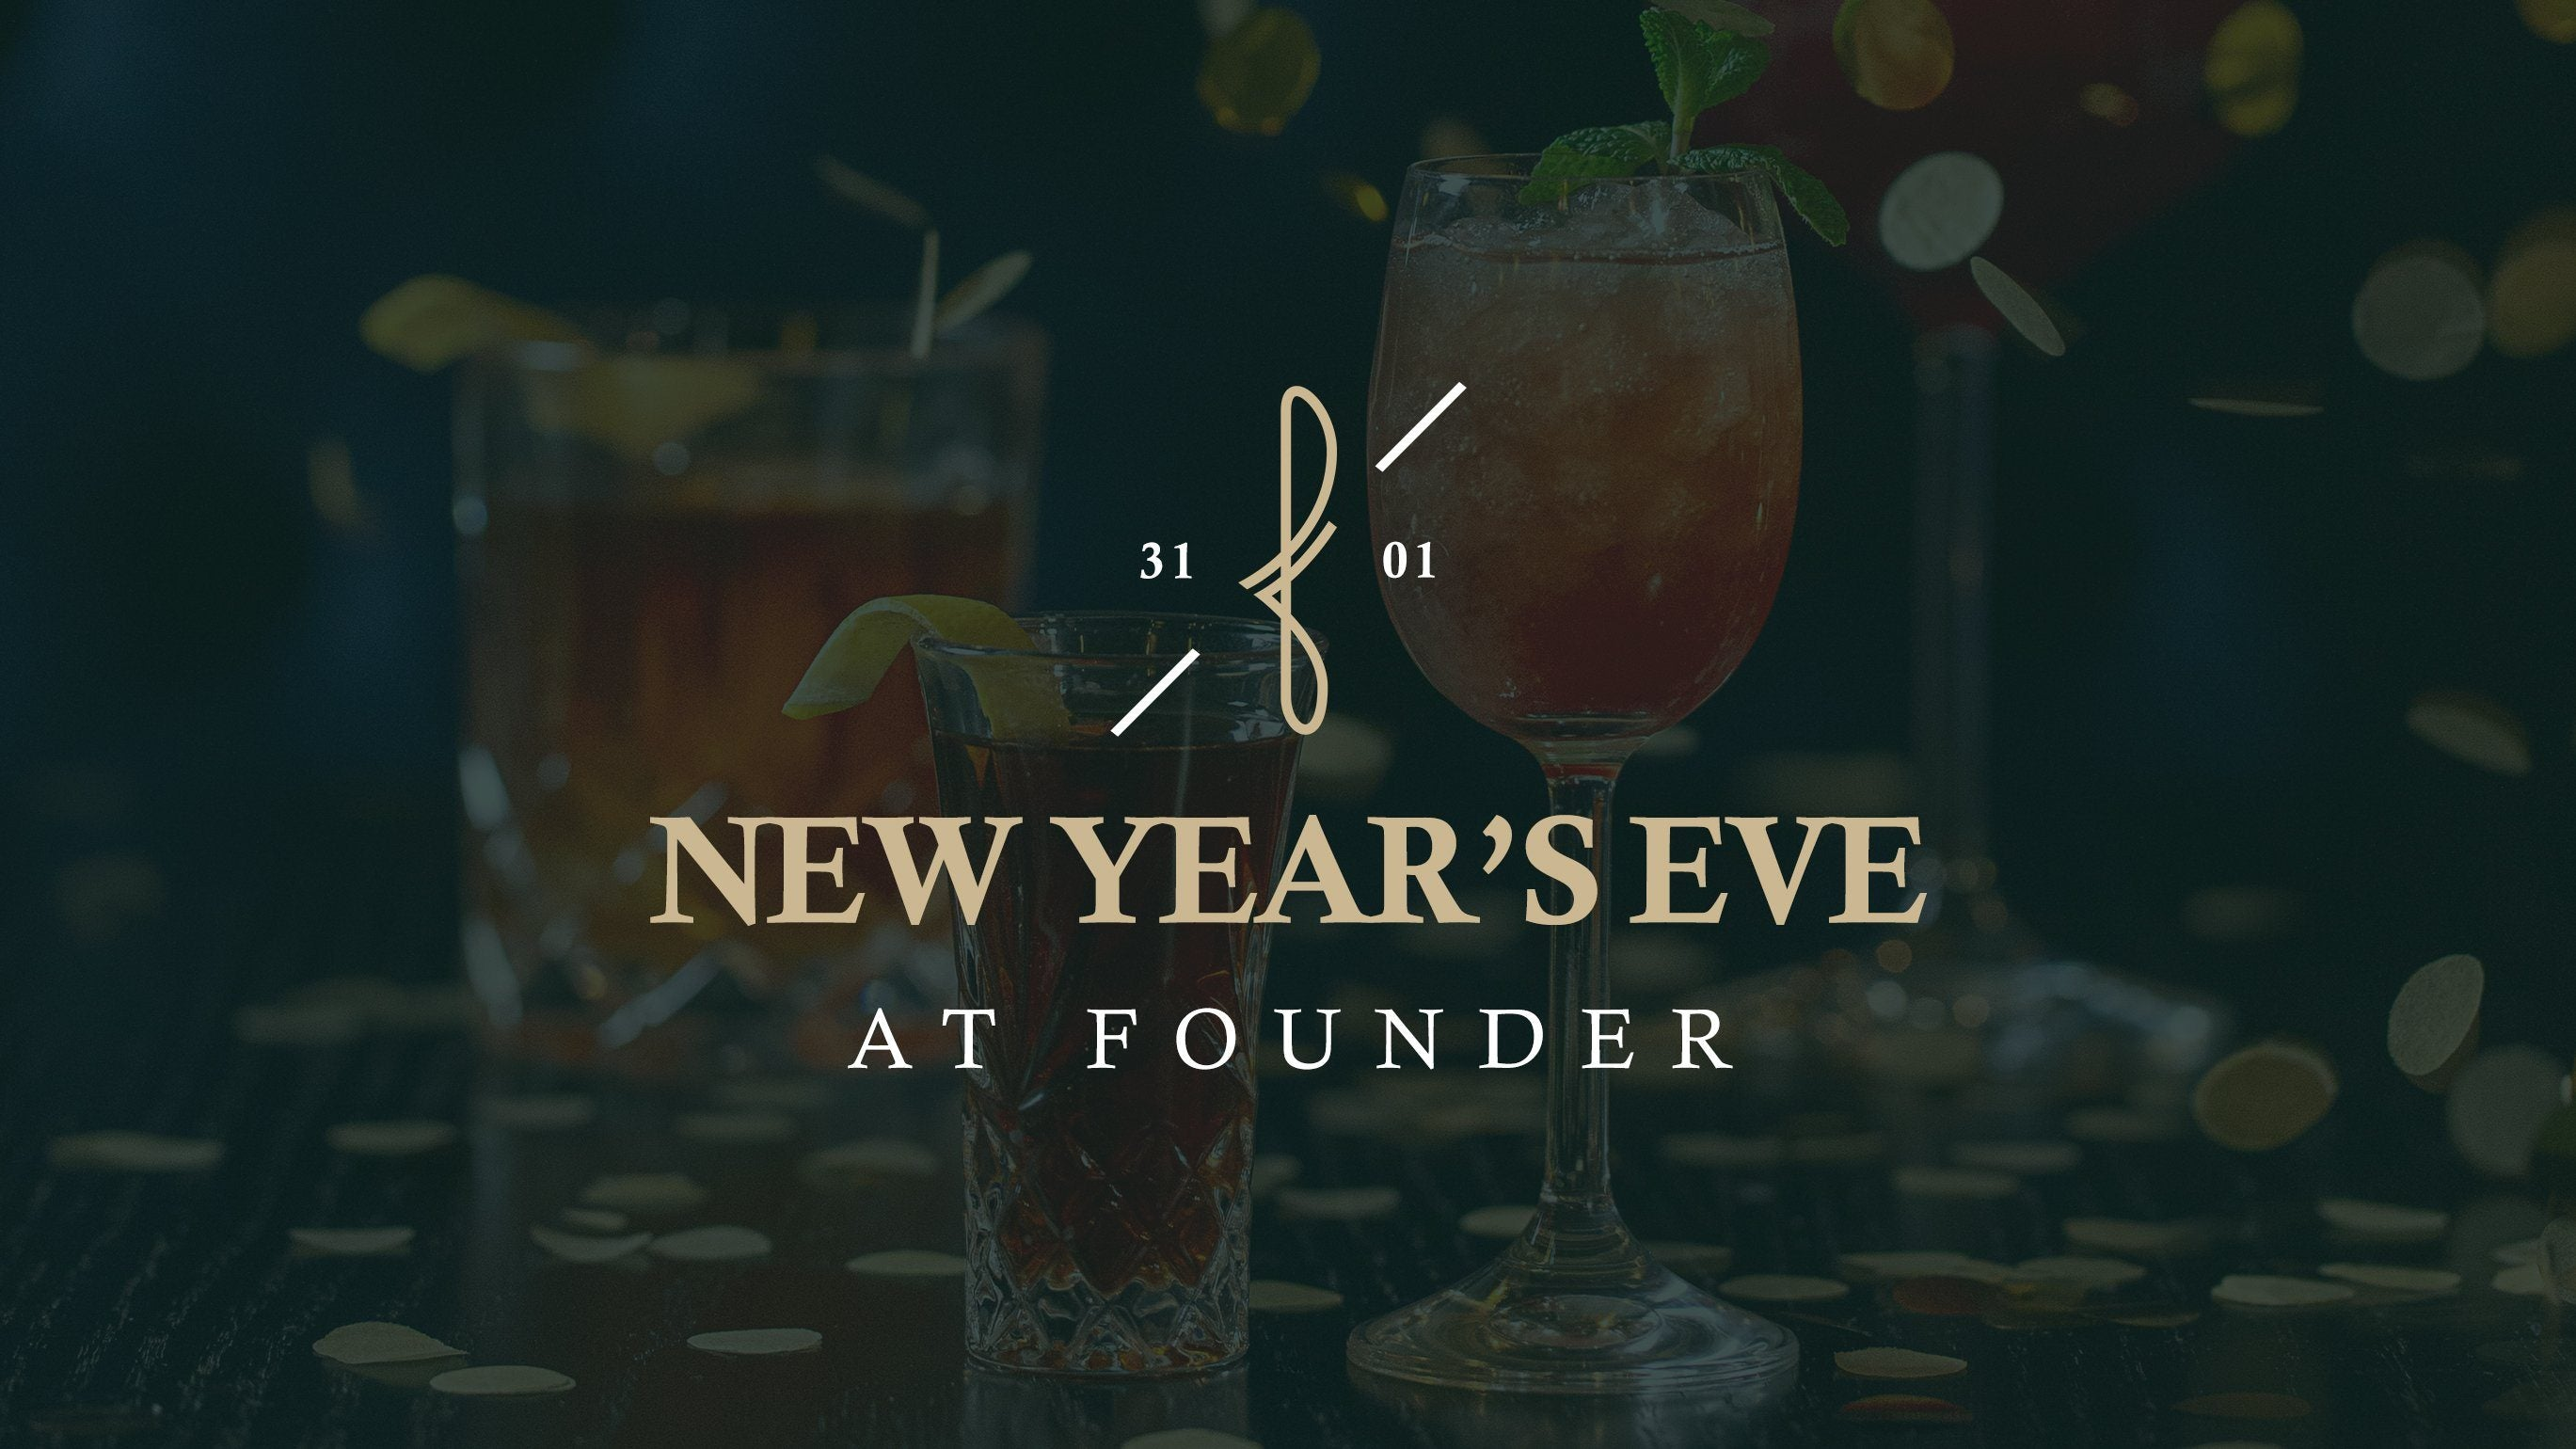 New Year's Eve at Founder 2018